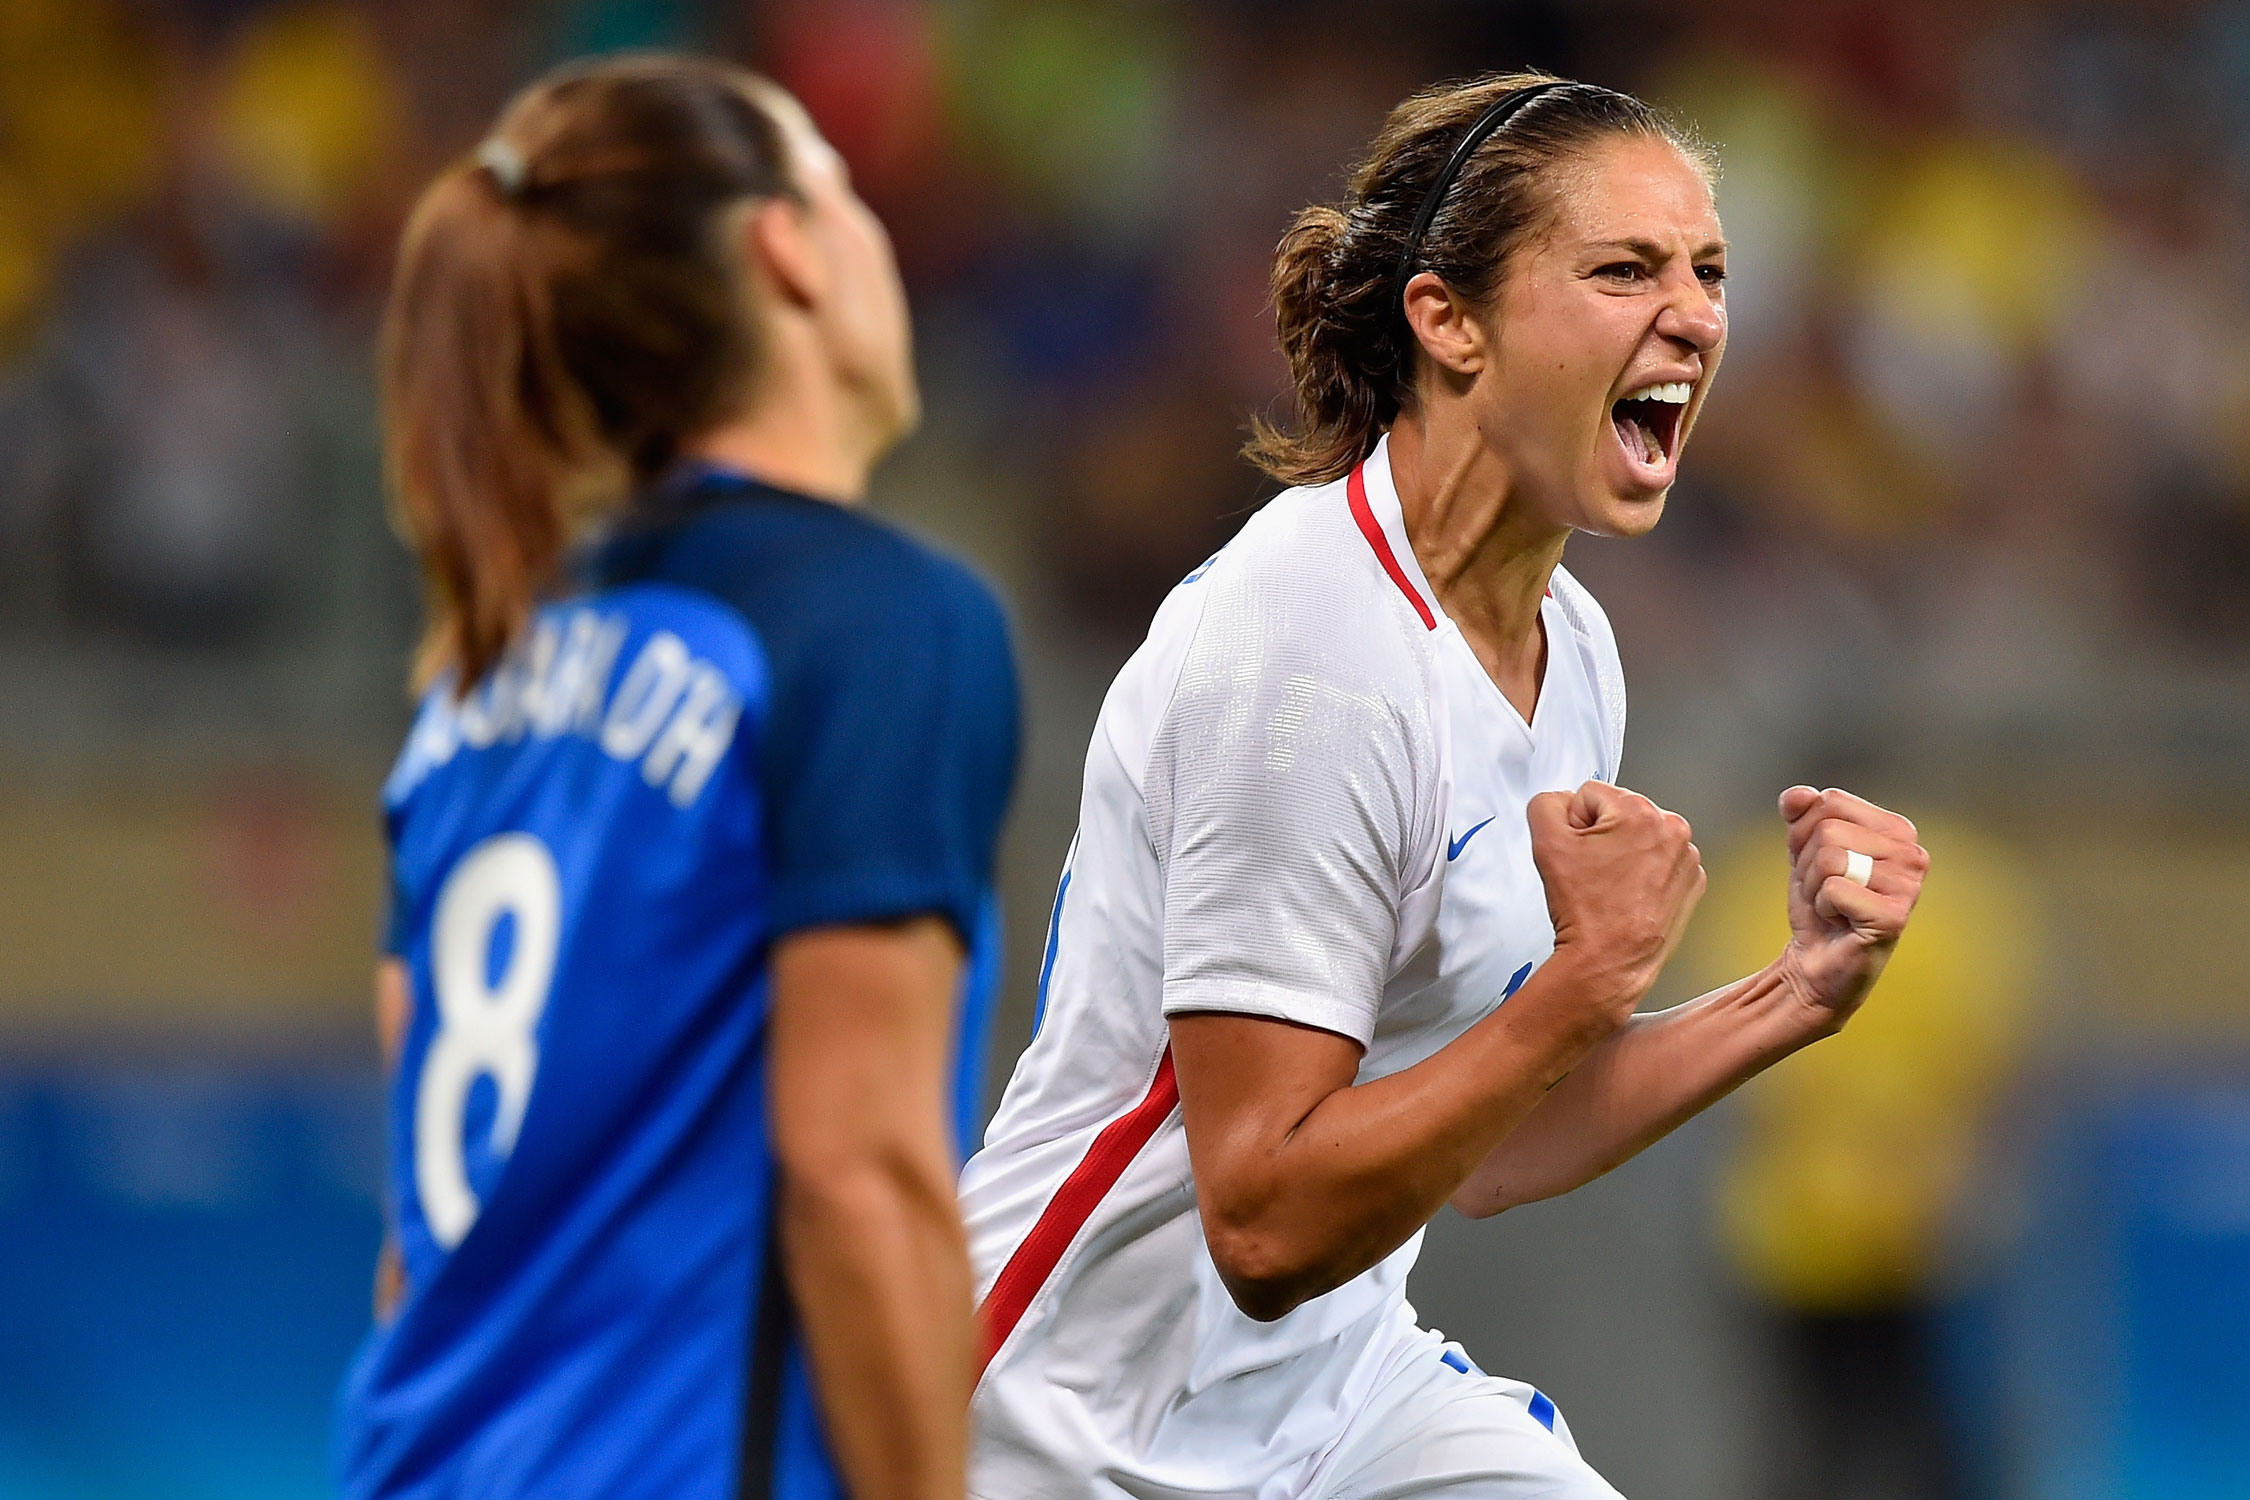 Carli Lloyd scores the only goal in a 1-0 win over a stout France side to punch the USA's ticket to the knockout stage at the Olympics